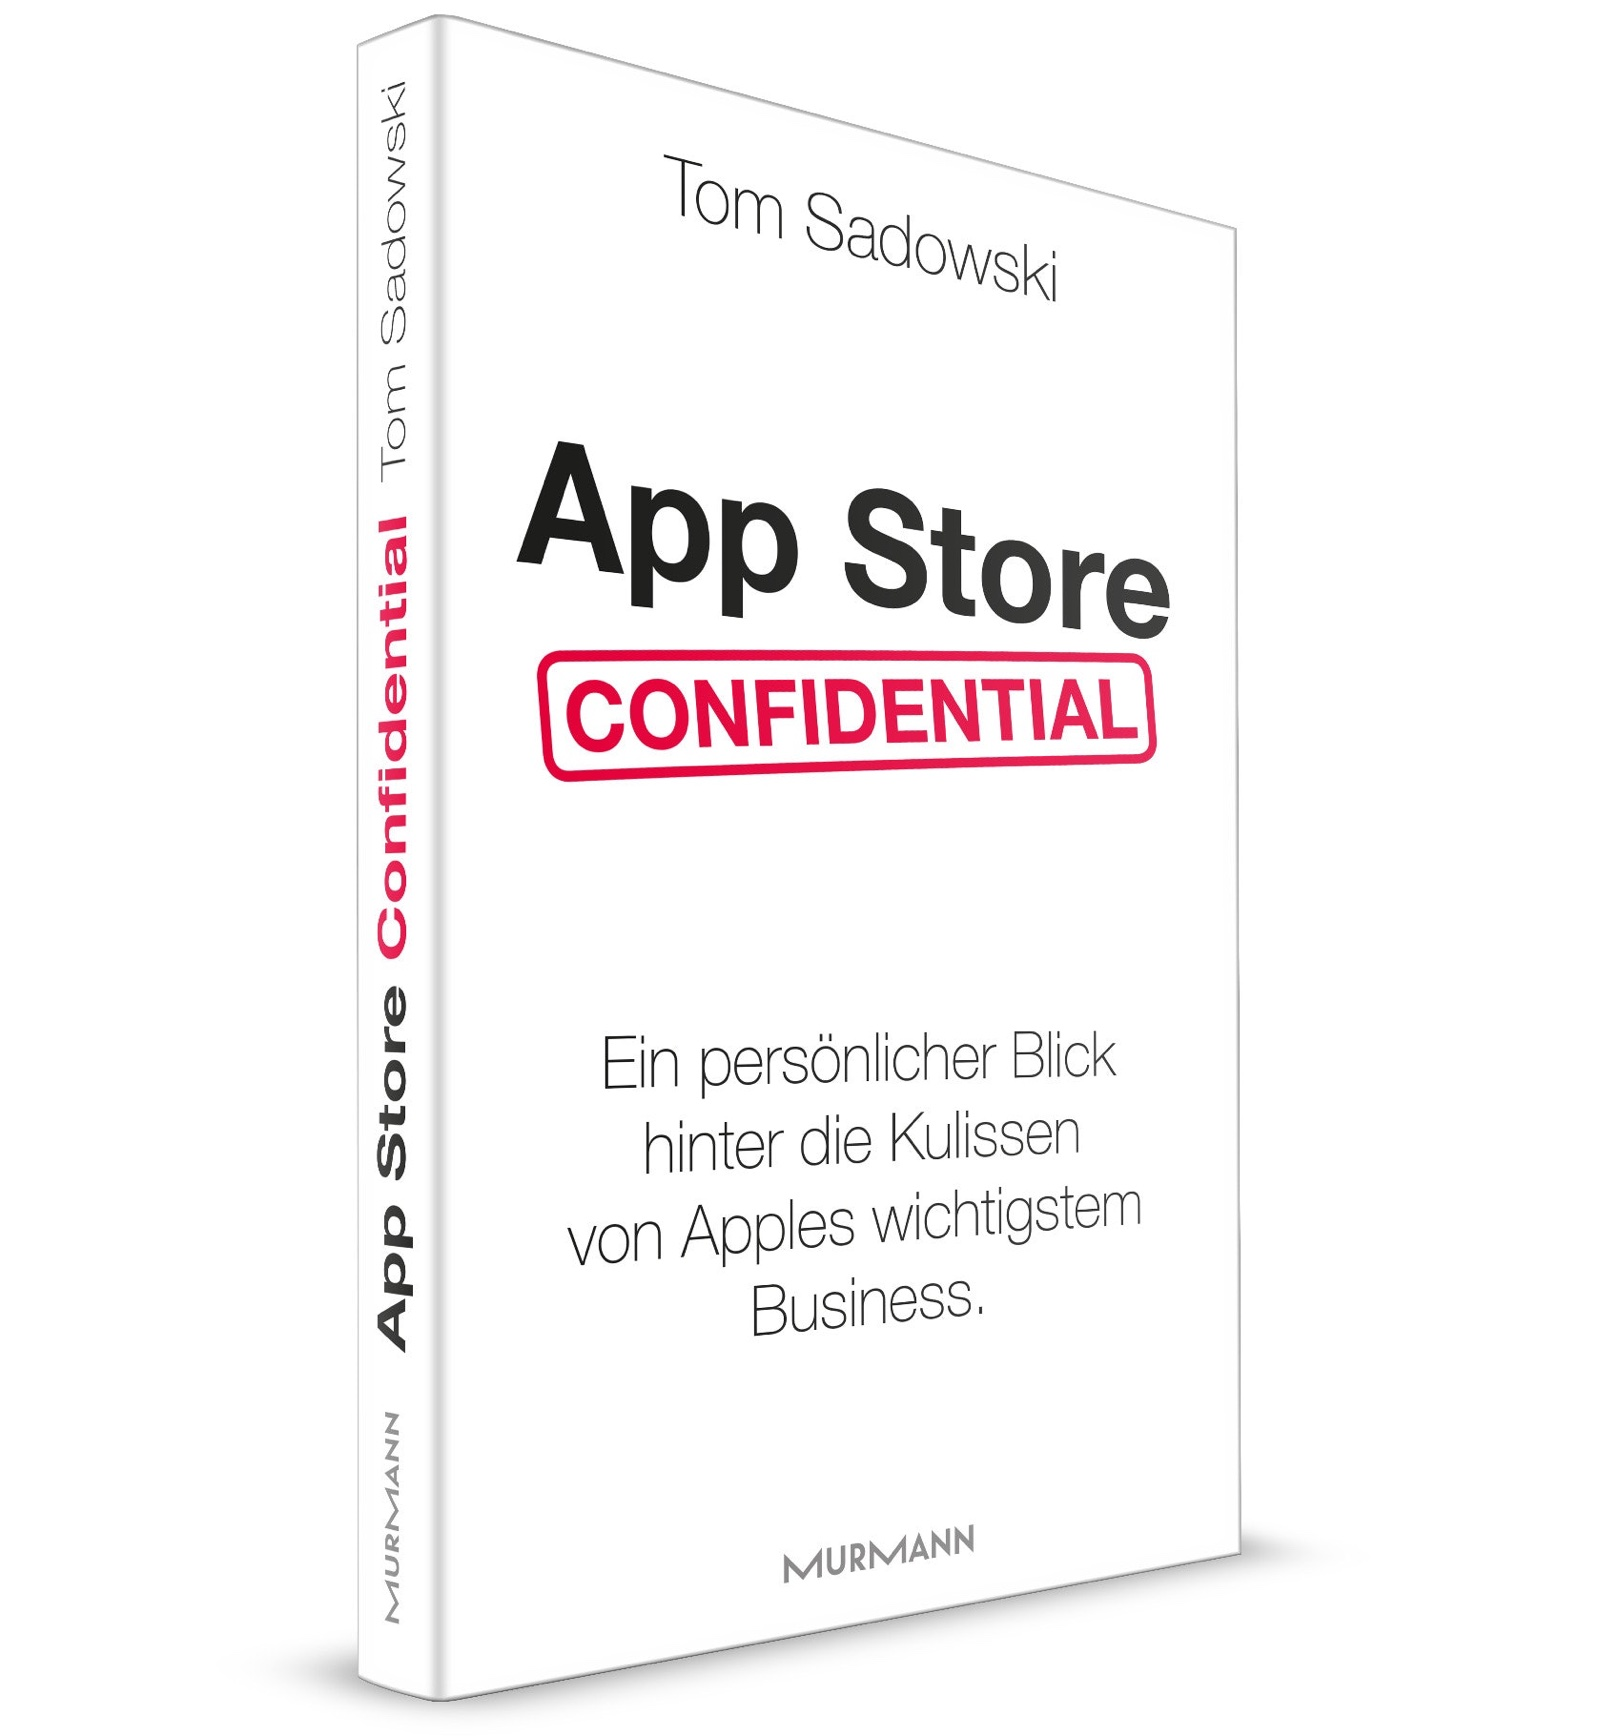 Apple Wants to Stop Publication of 'App Store Confidential' Book Due to Inclusion of 'Business Secrets' - MacRumors